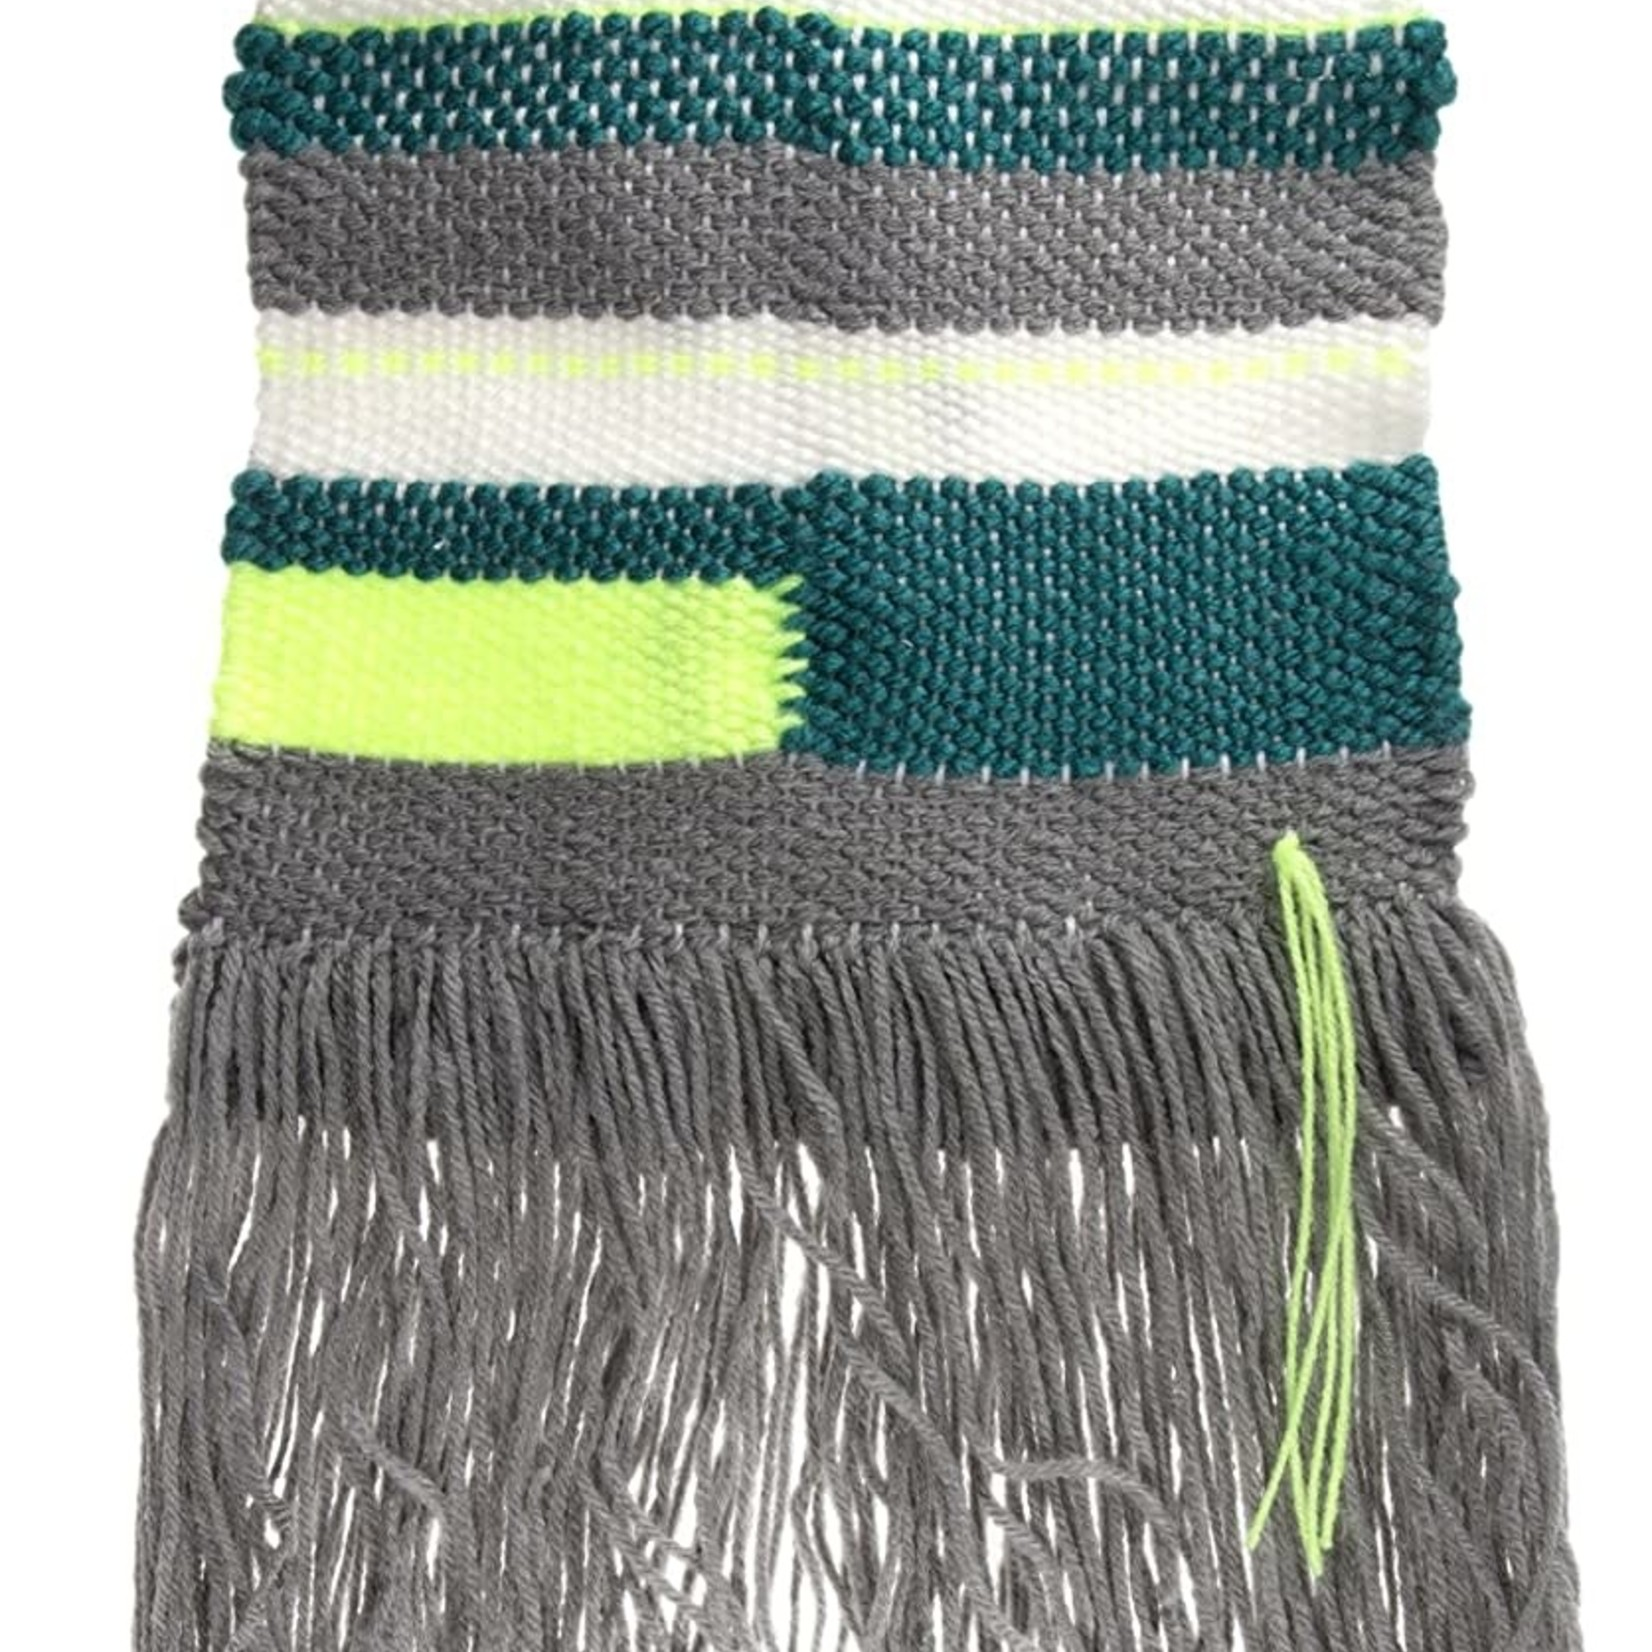 Crafts TO GO Weaving Kit by Crafts TO GO